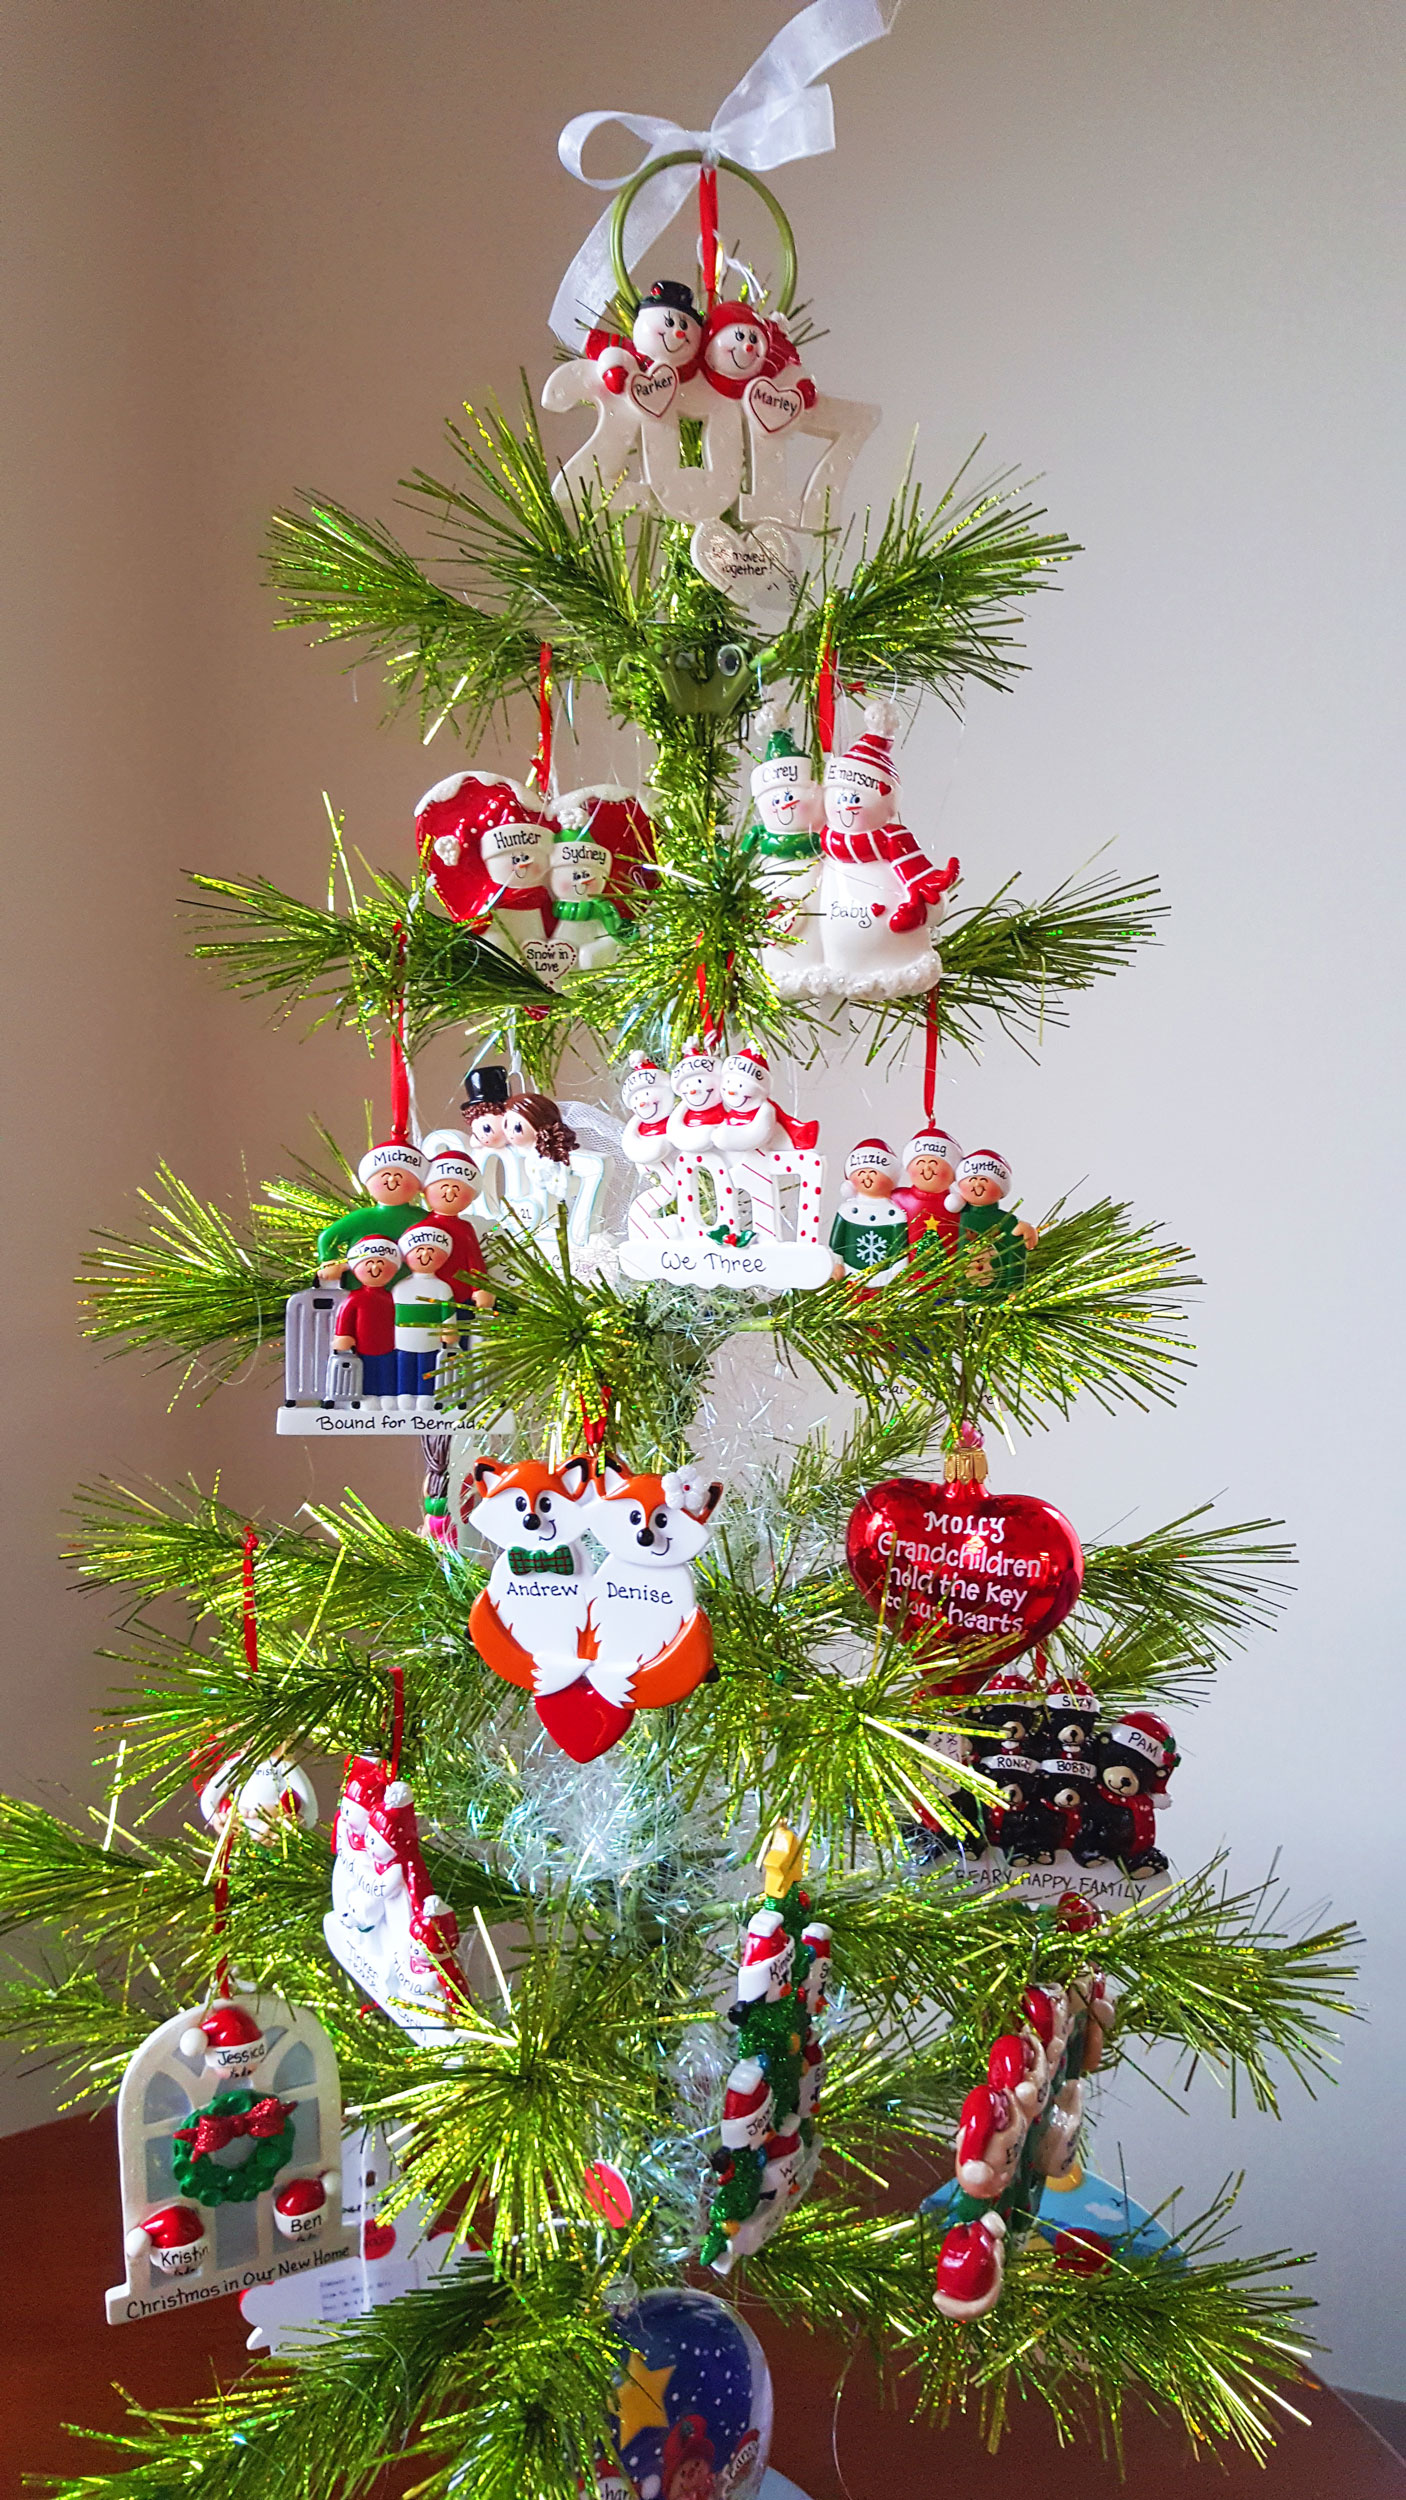 A collection of Personalized Family Ornaments for you to find the perfect ornament to represent your family this Christmas. | OrnamentShop.com